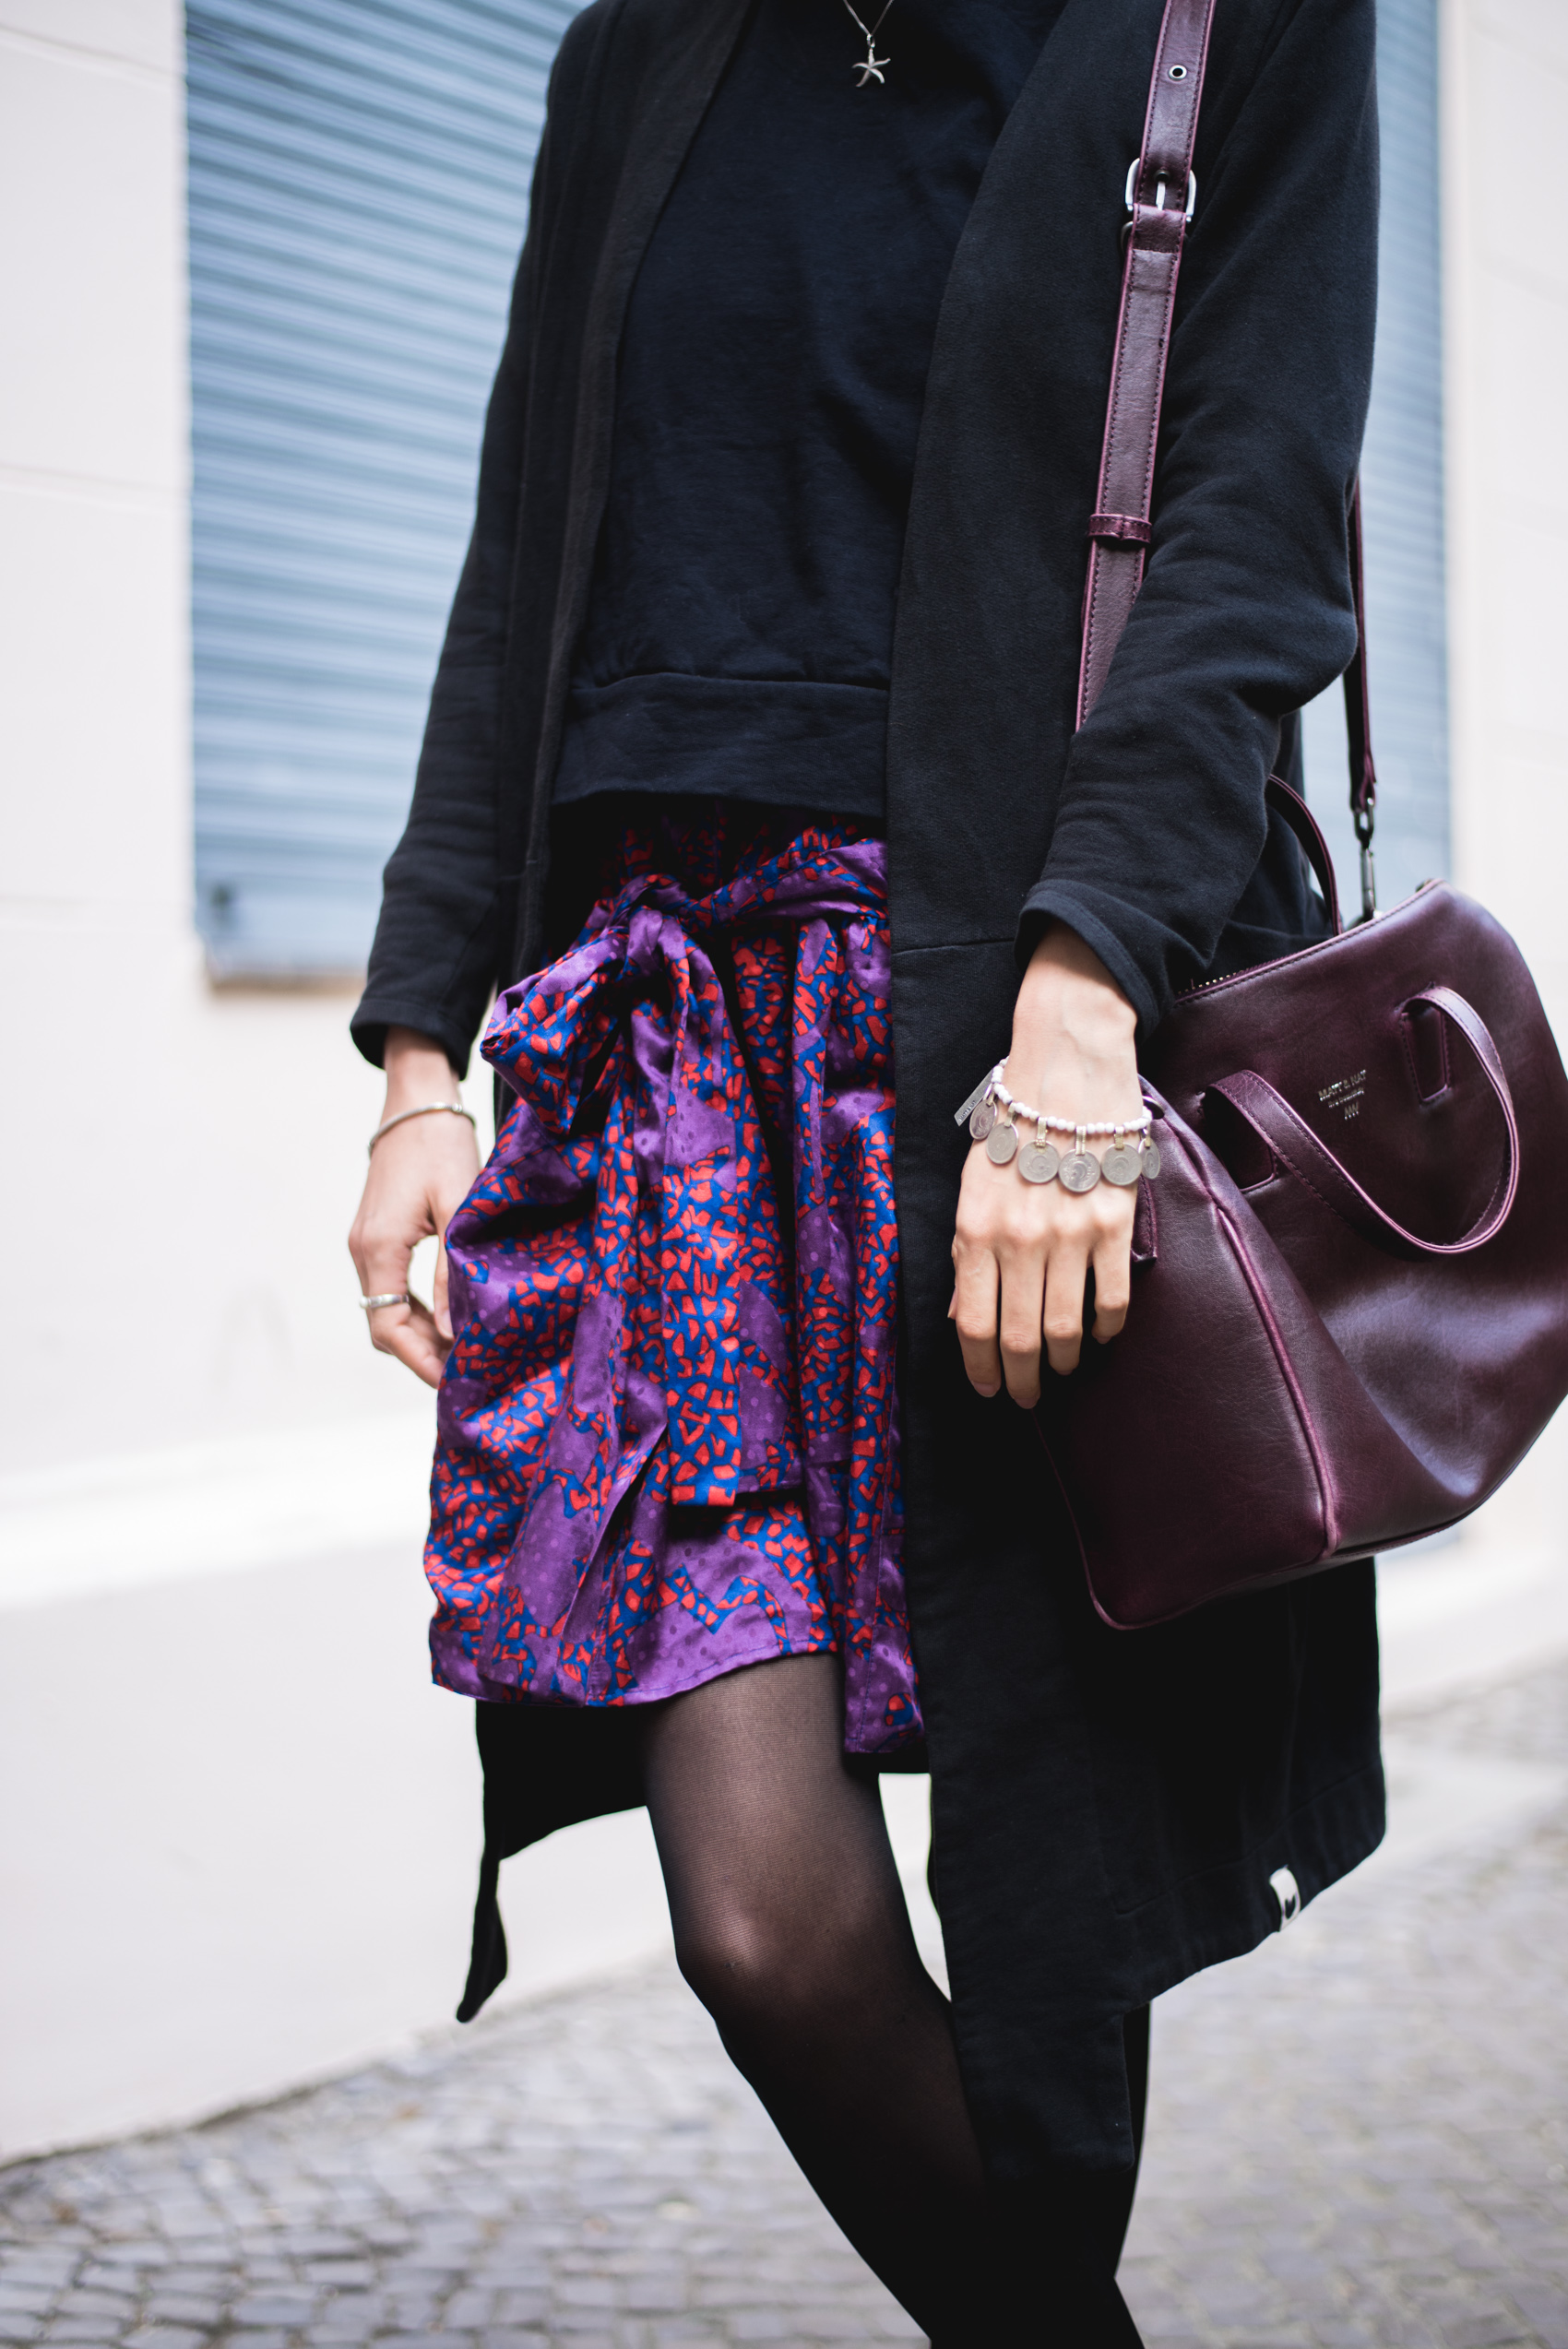 fair-fashion-and-second-hand-look-4-of-5